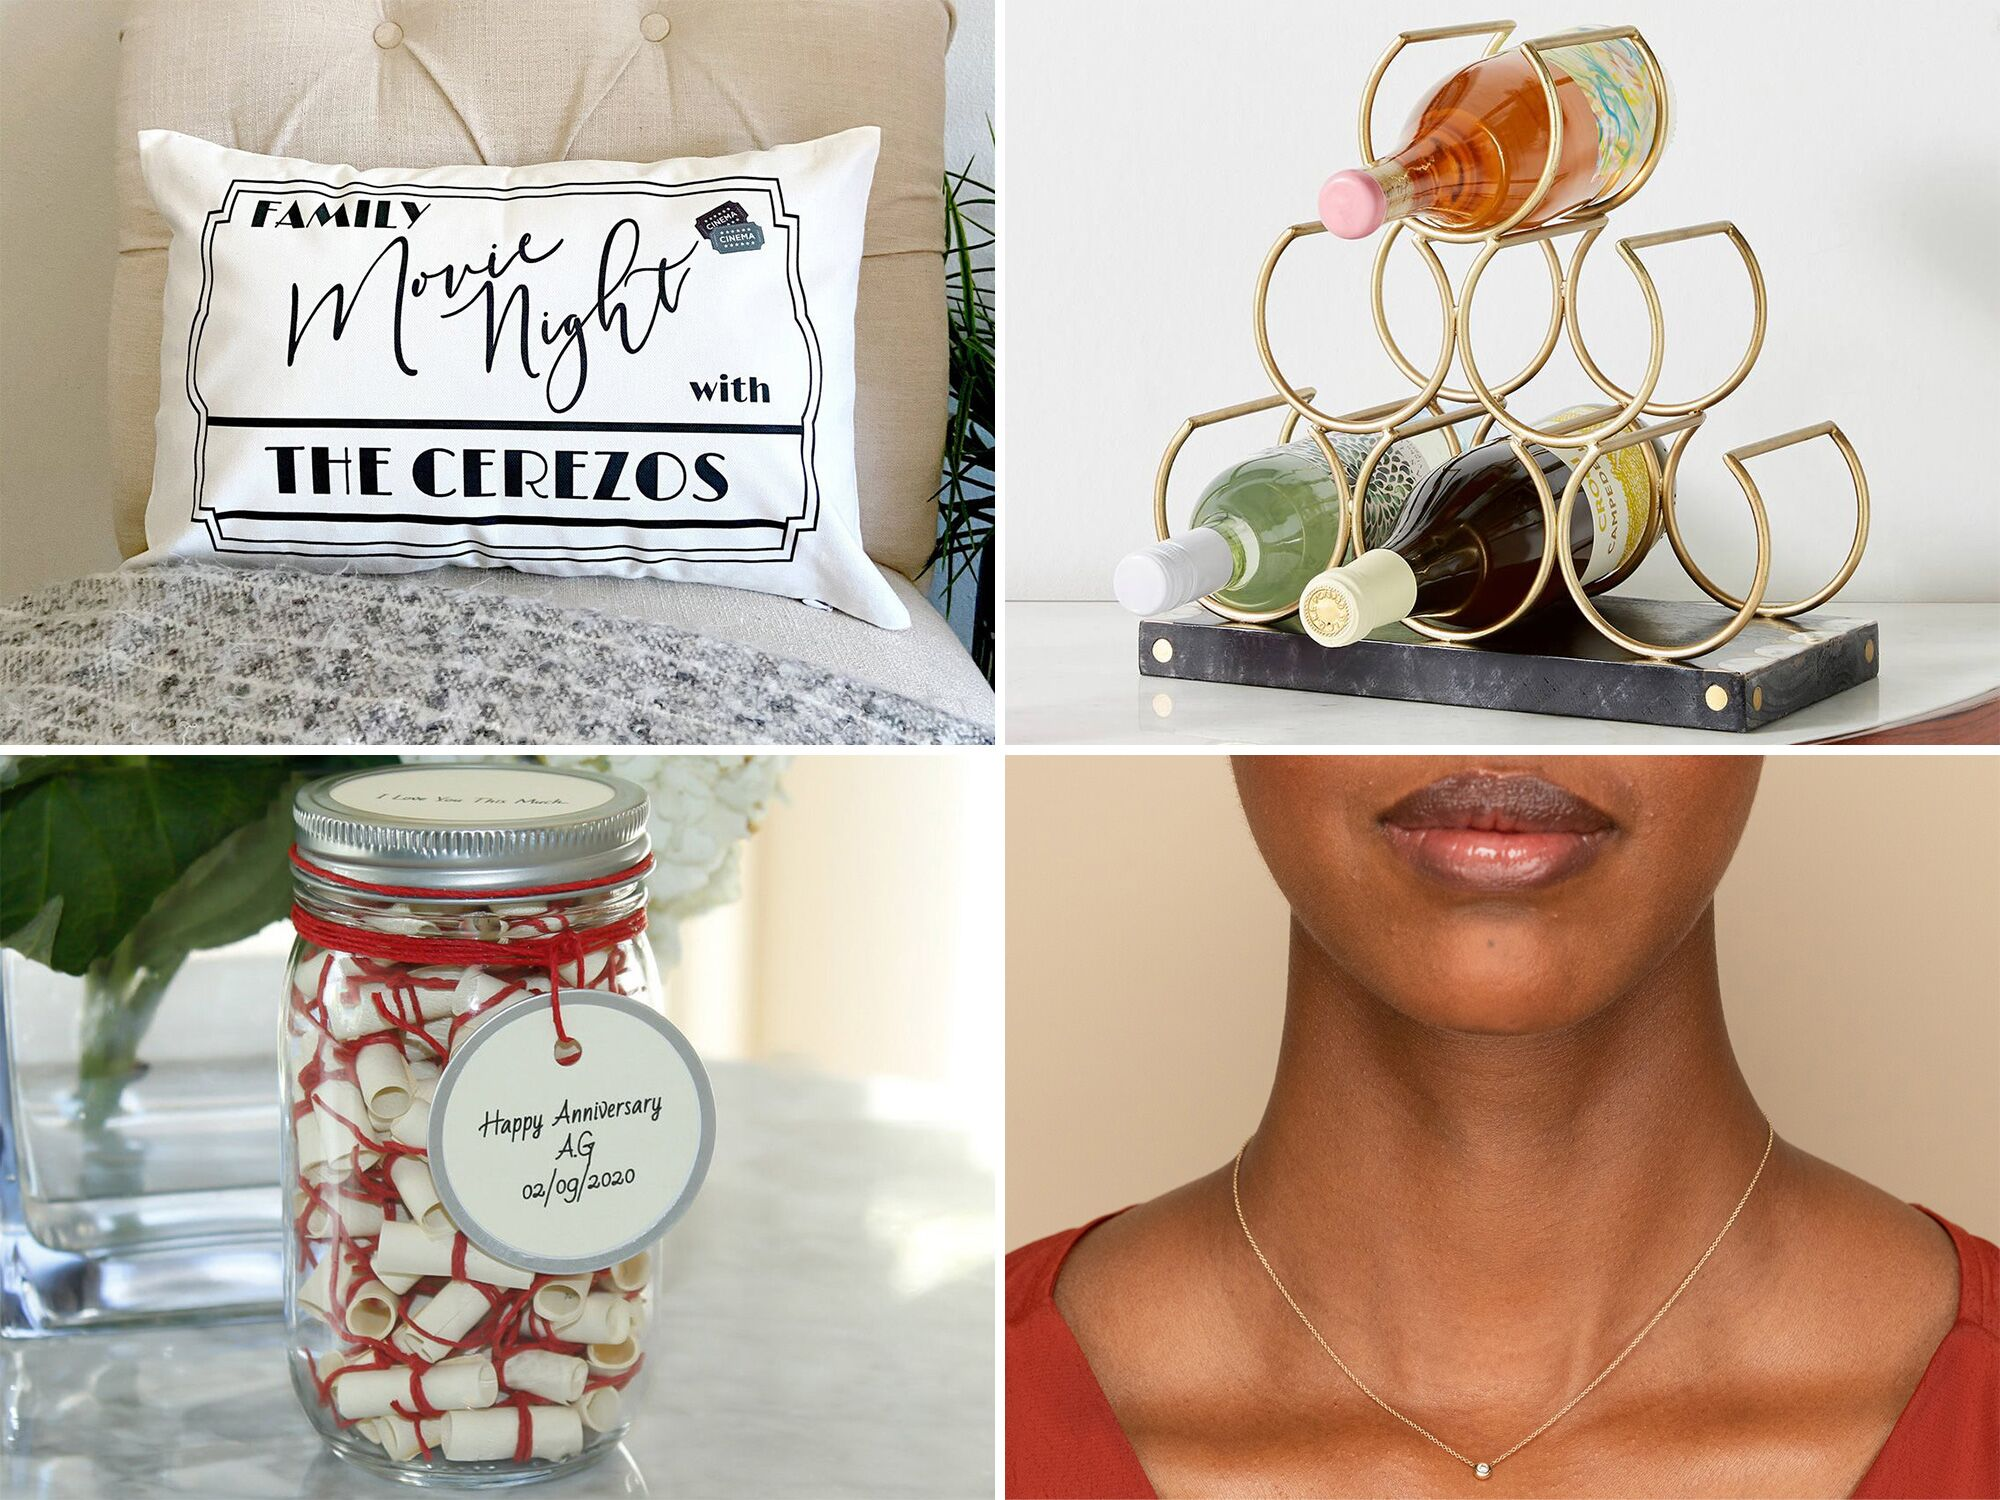 17 Year Anniversary Gifts For Your Husband Wife Or Favorite Couple